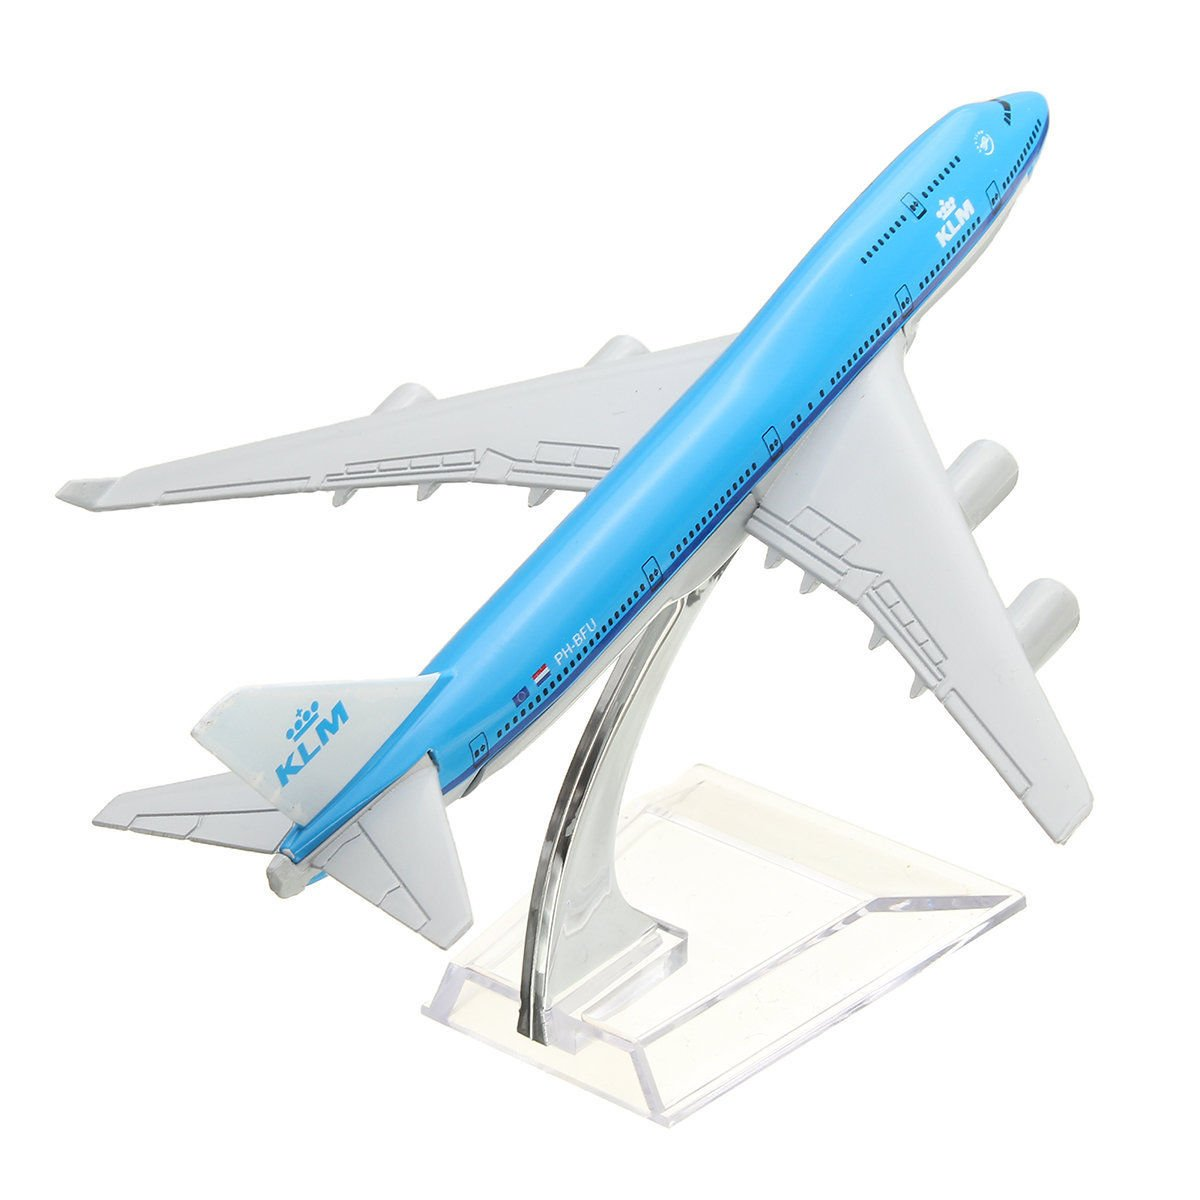 NEW 16cm Airplane Metal Plane Model Aircraft B747 KLM Aeroplane Scale Airplane